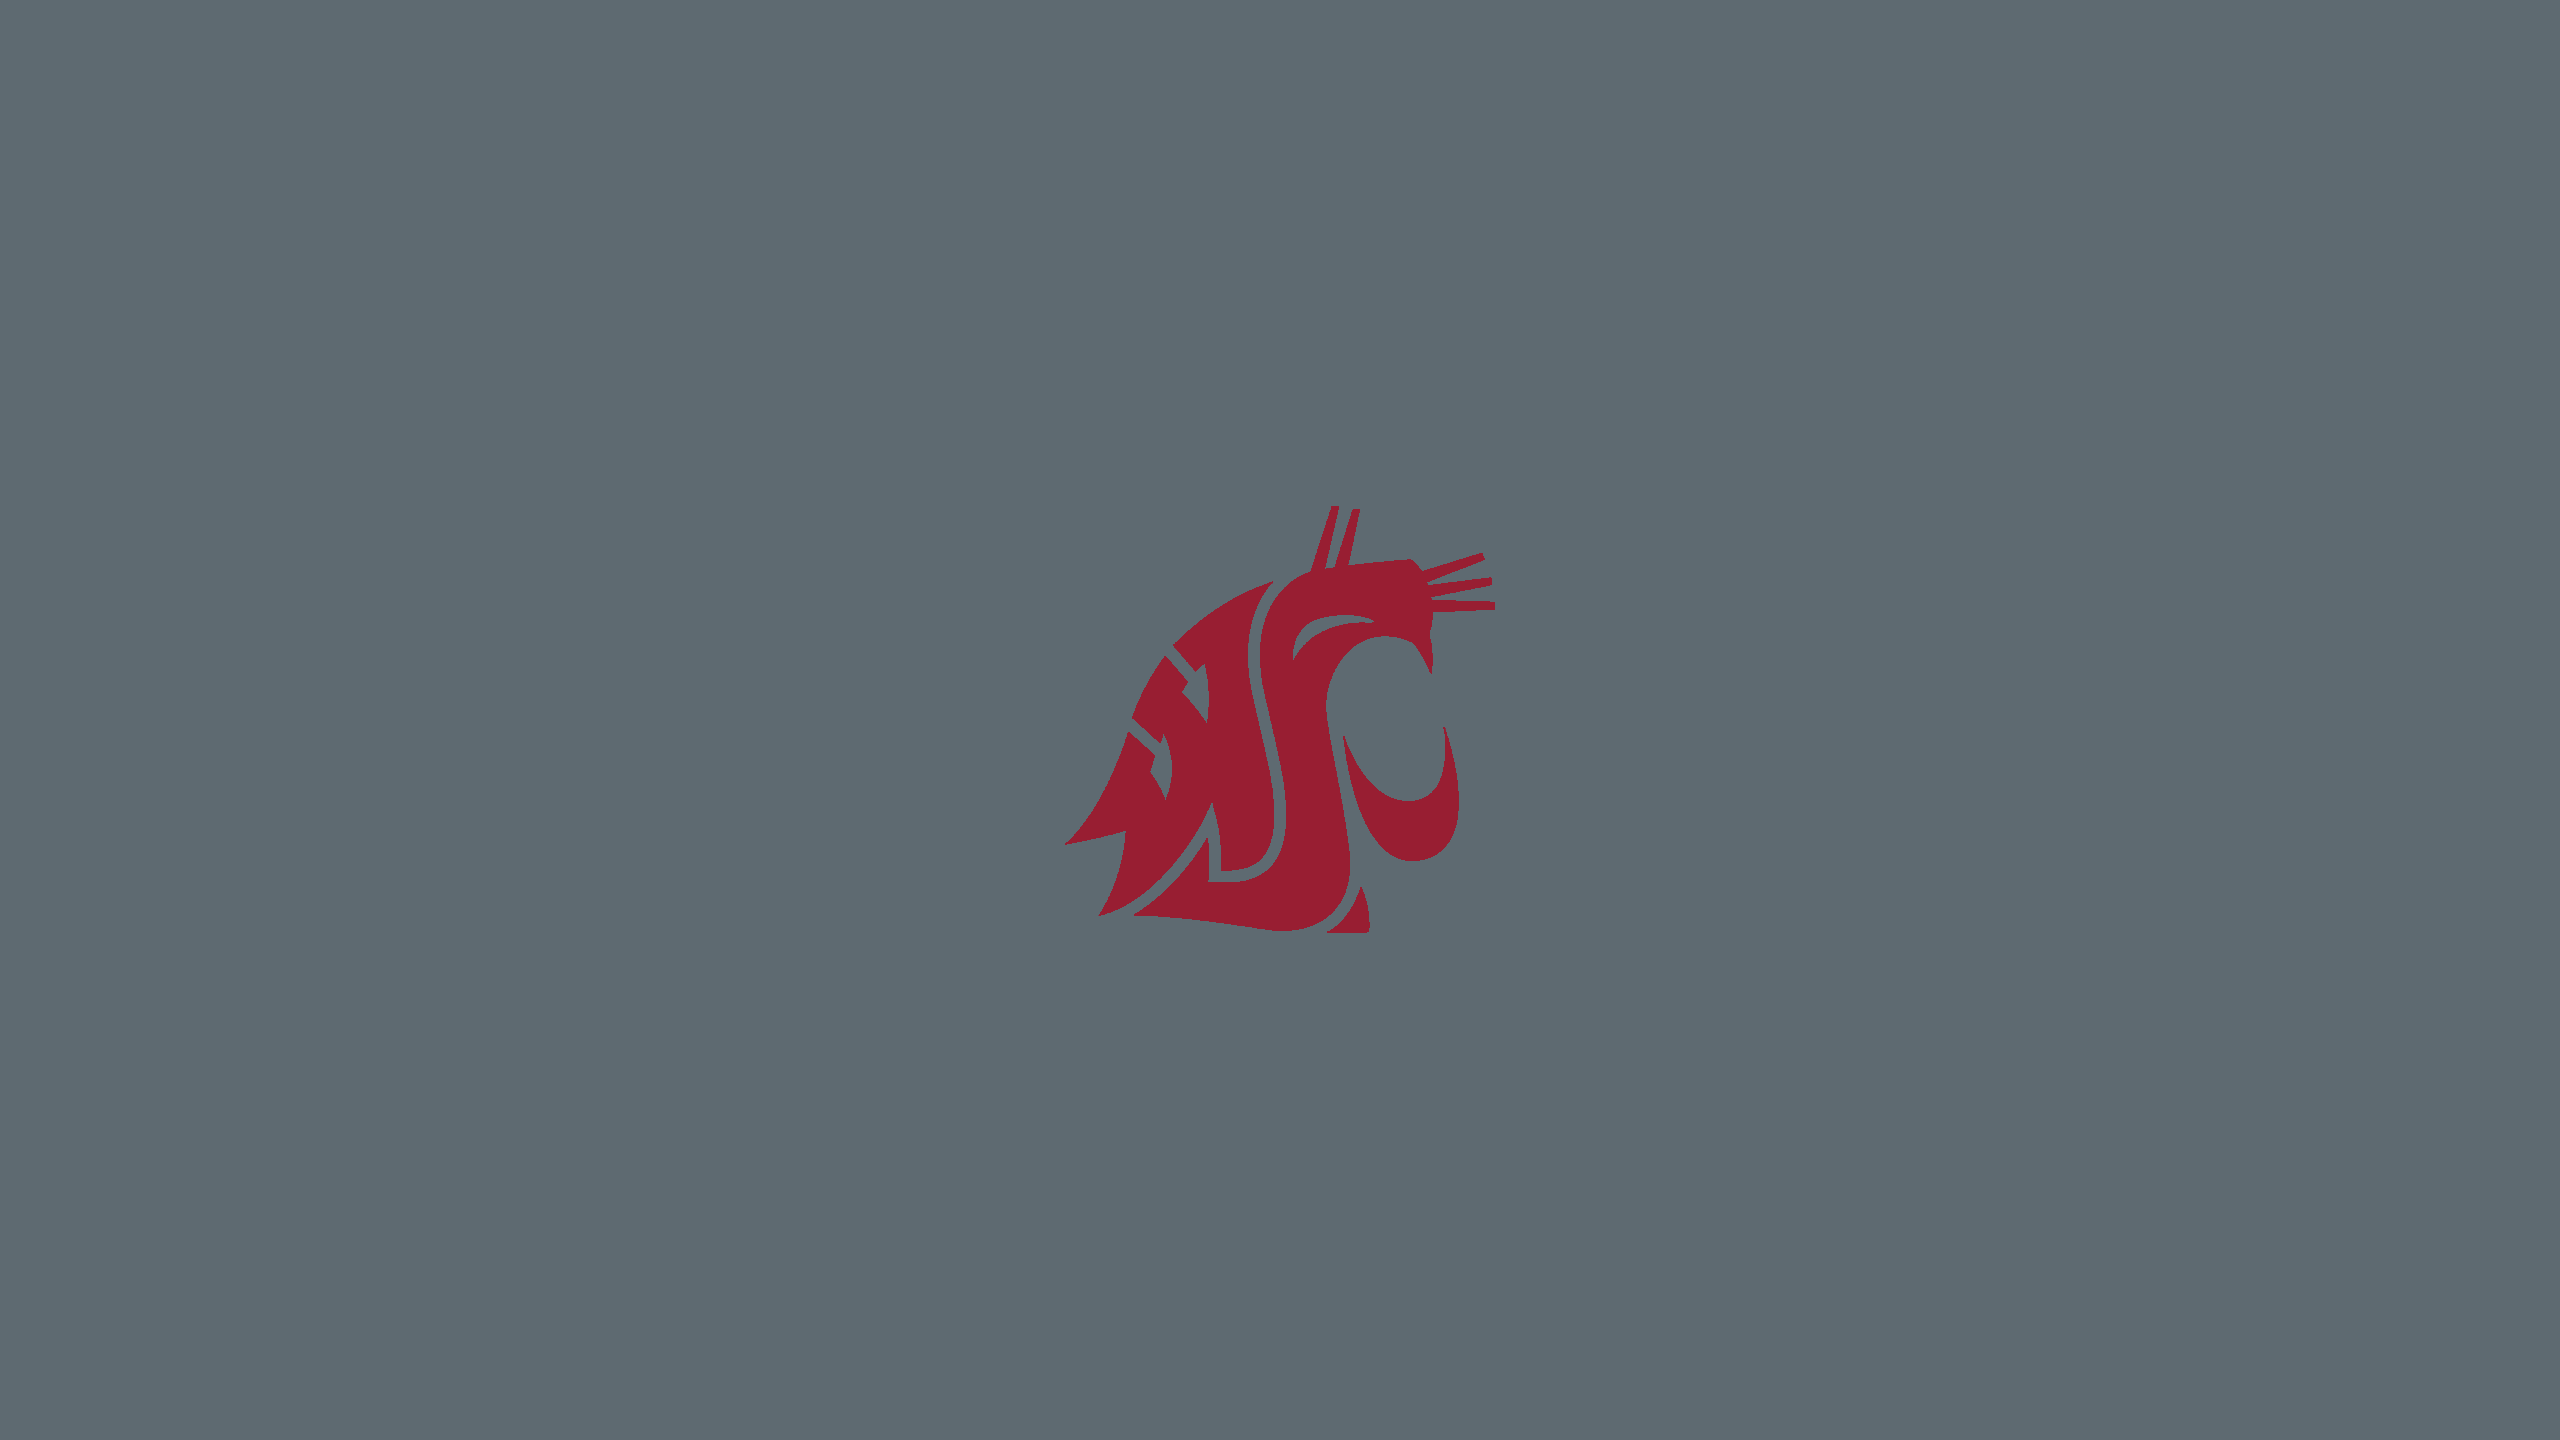 Washington State University Cougars